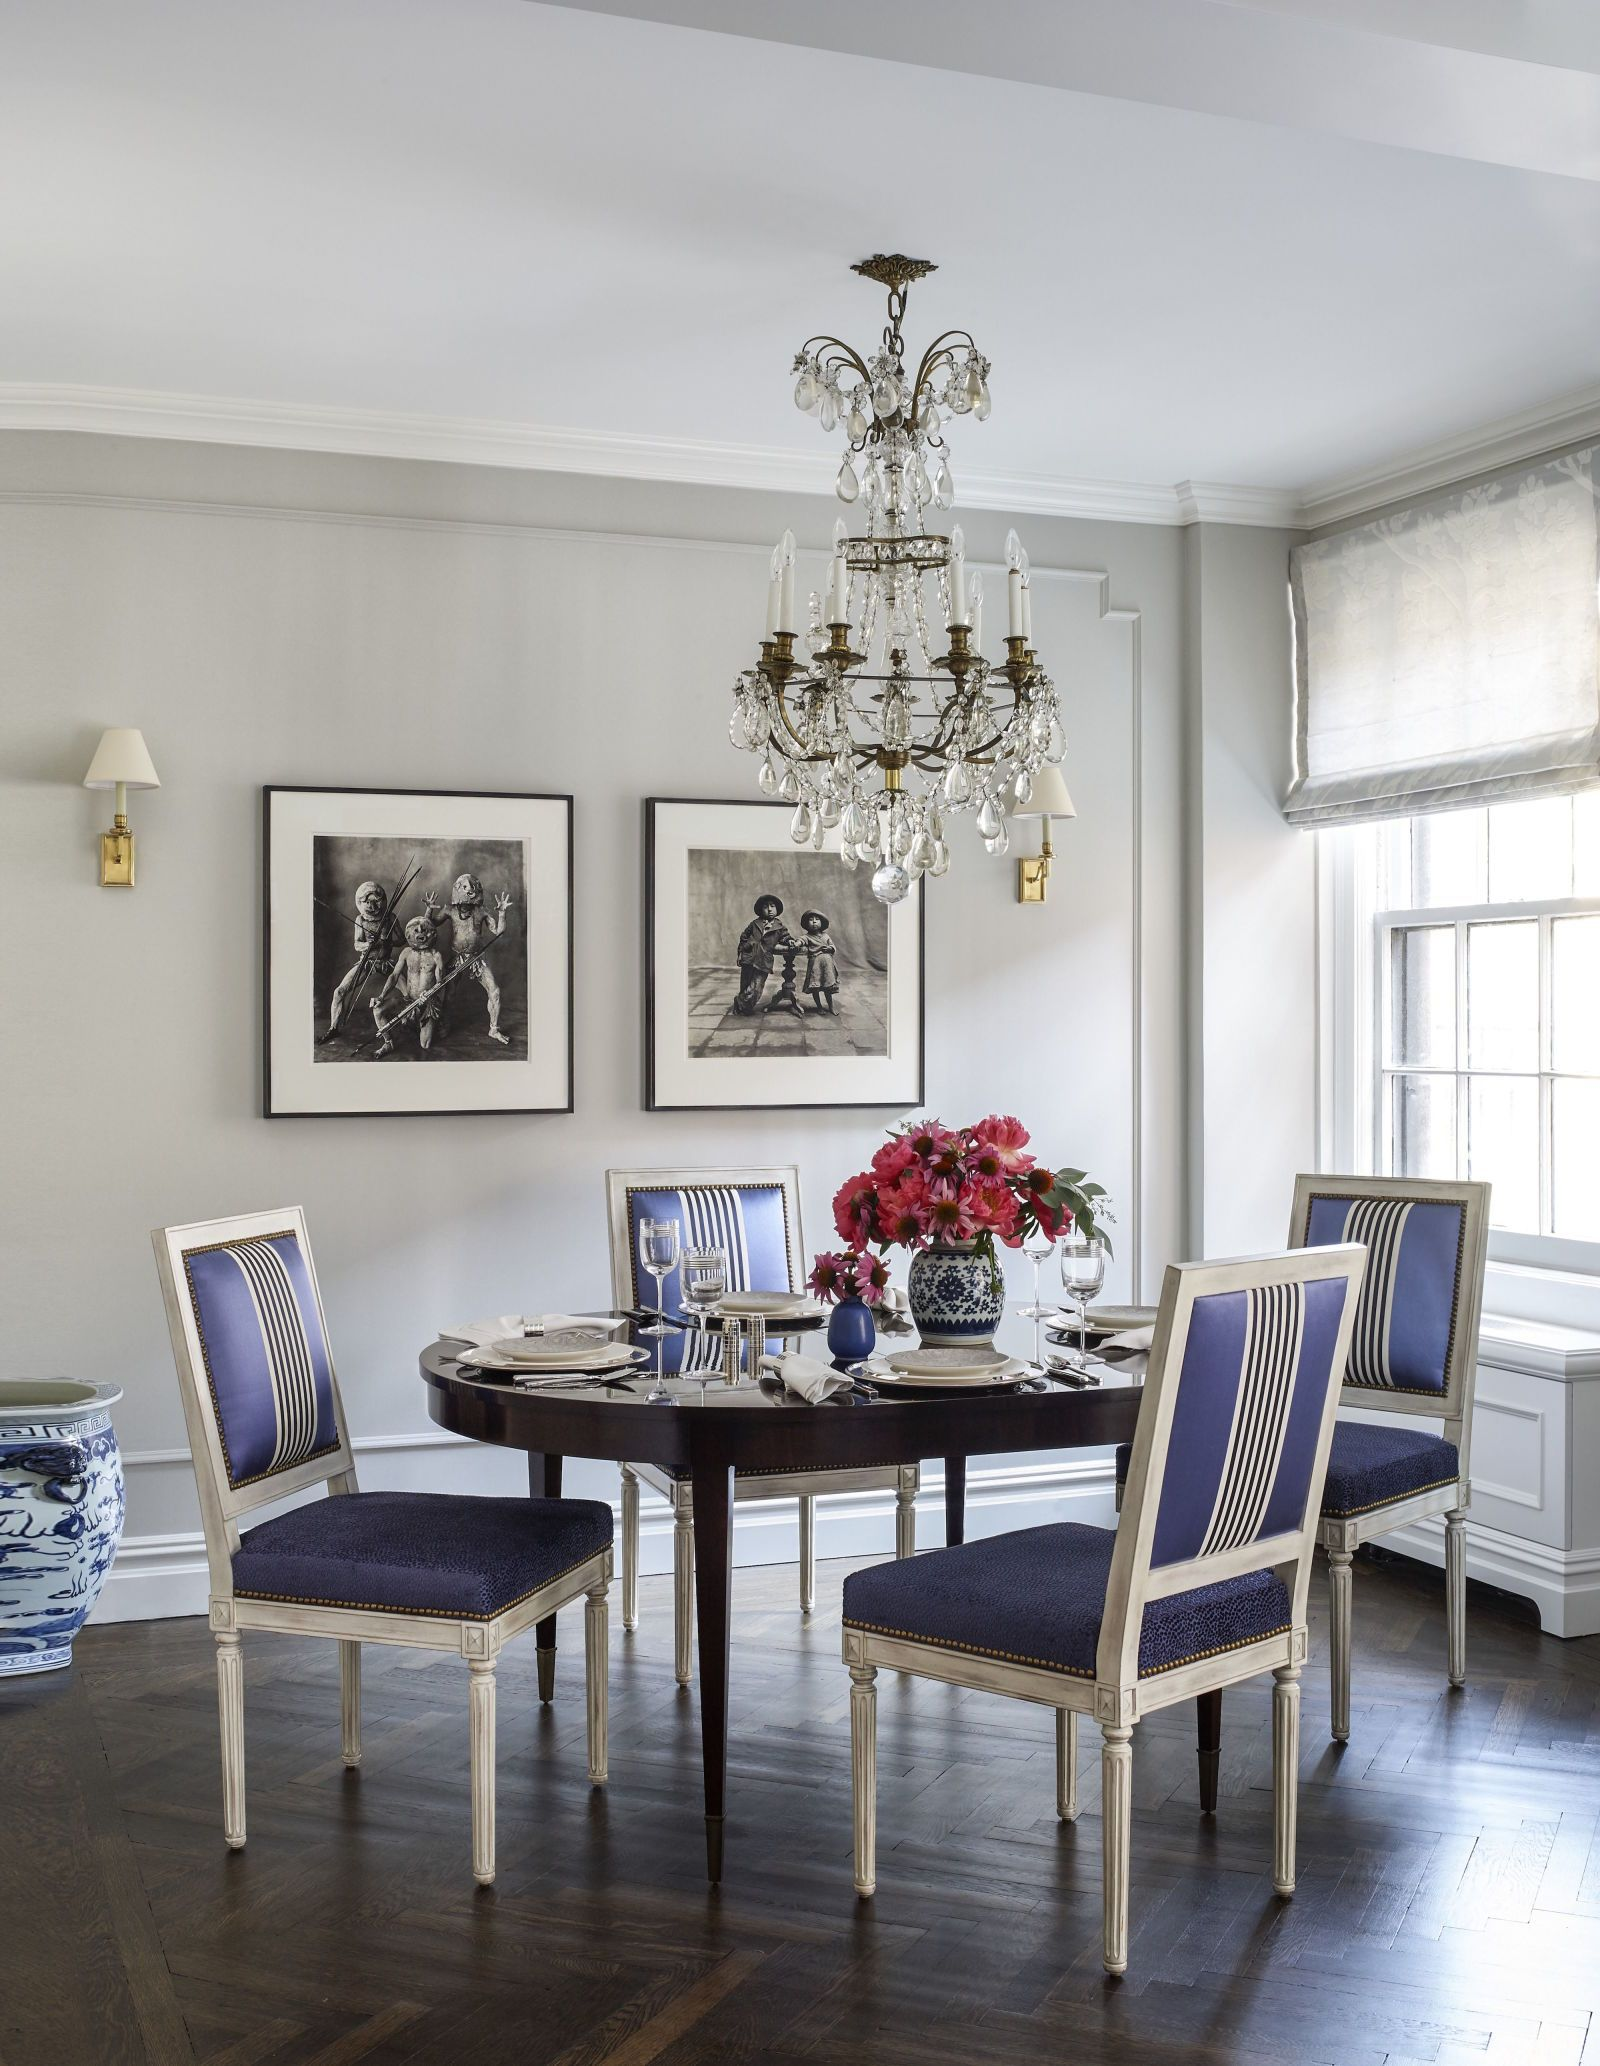 apartment furniture nyc. The Dining Room In Emmy Rossum\u0027s NYC Apartment. Chairs By Bernhardt Upholstered Fabrics Cowtan \u0026 Tout Surround A Table Baker; Apartment Furniture Nyc